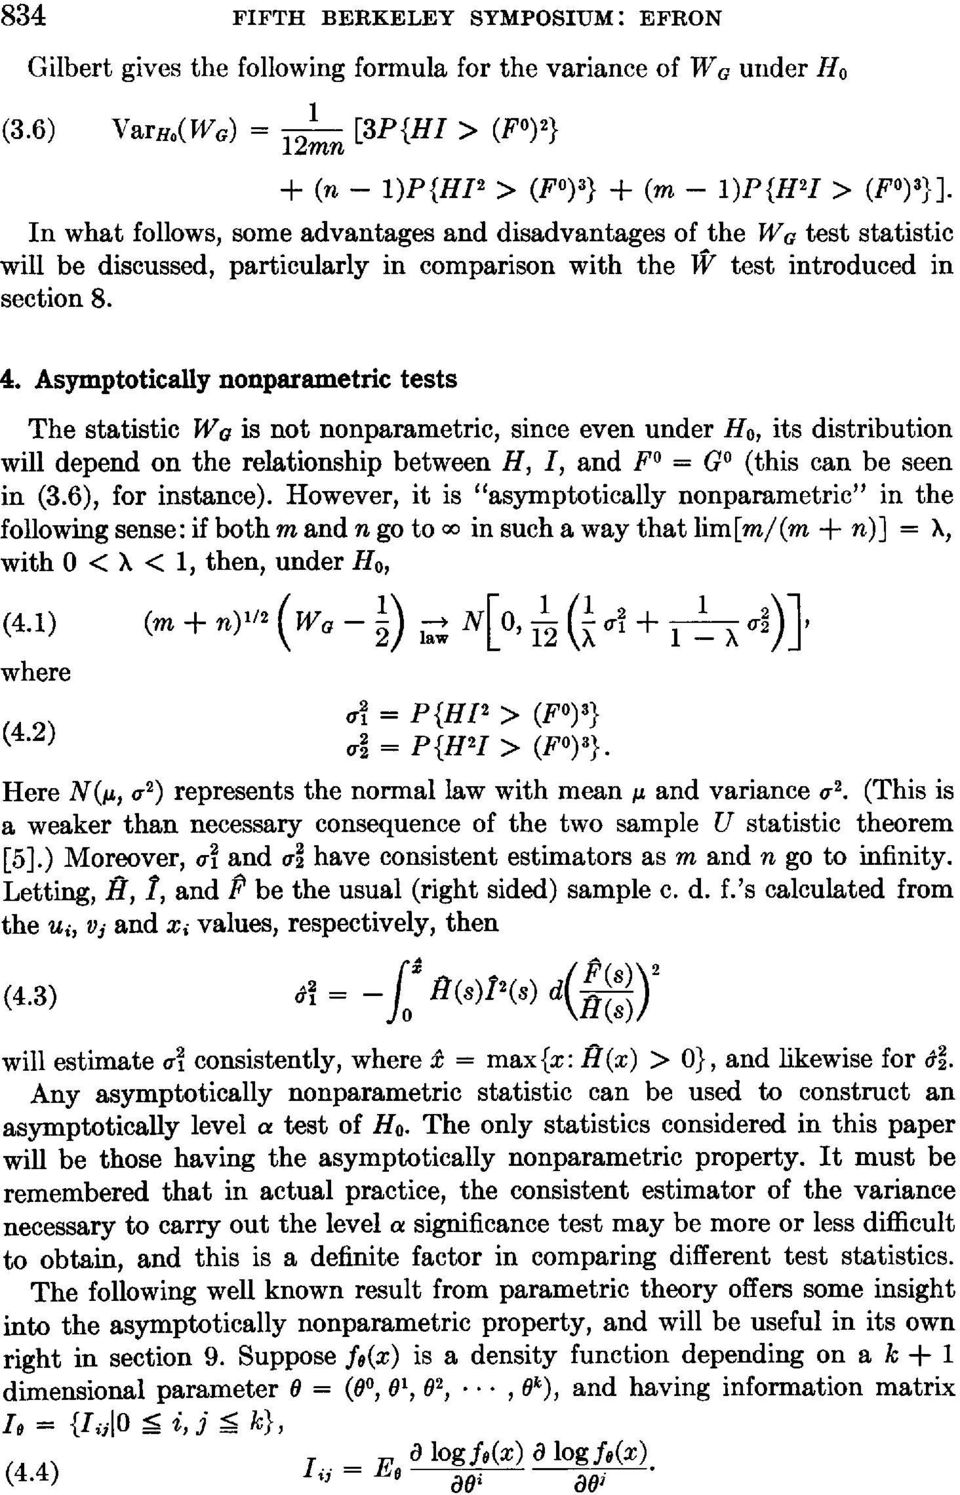 Asymptotically nonparametric tests The statistic WG is not nonparametric, since even under Ho, its distribution will depend on the relationship between H, I, and FO = GO (this can be seen in (3.